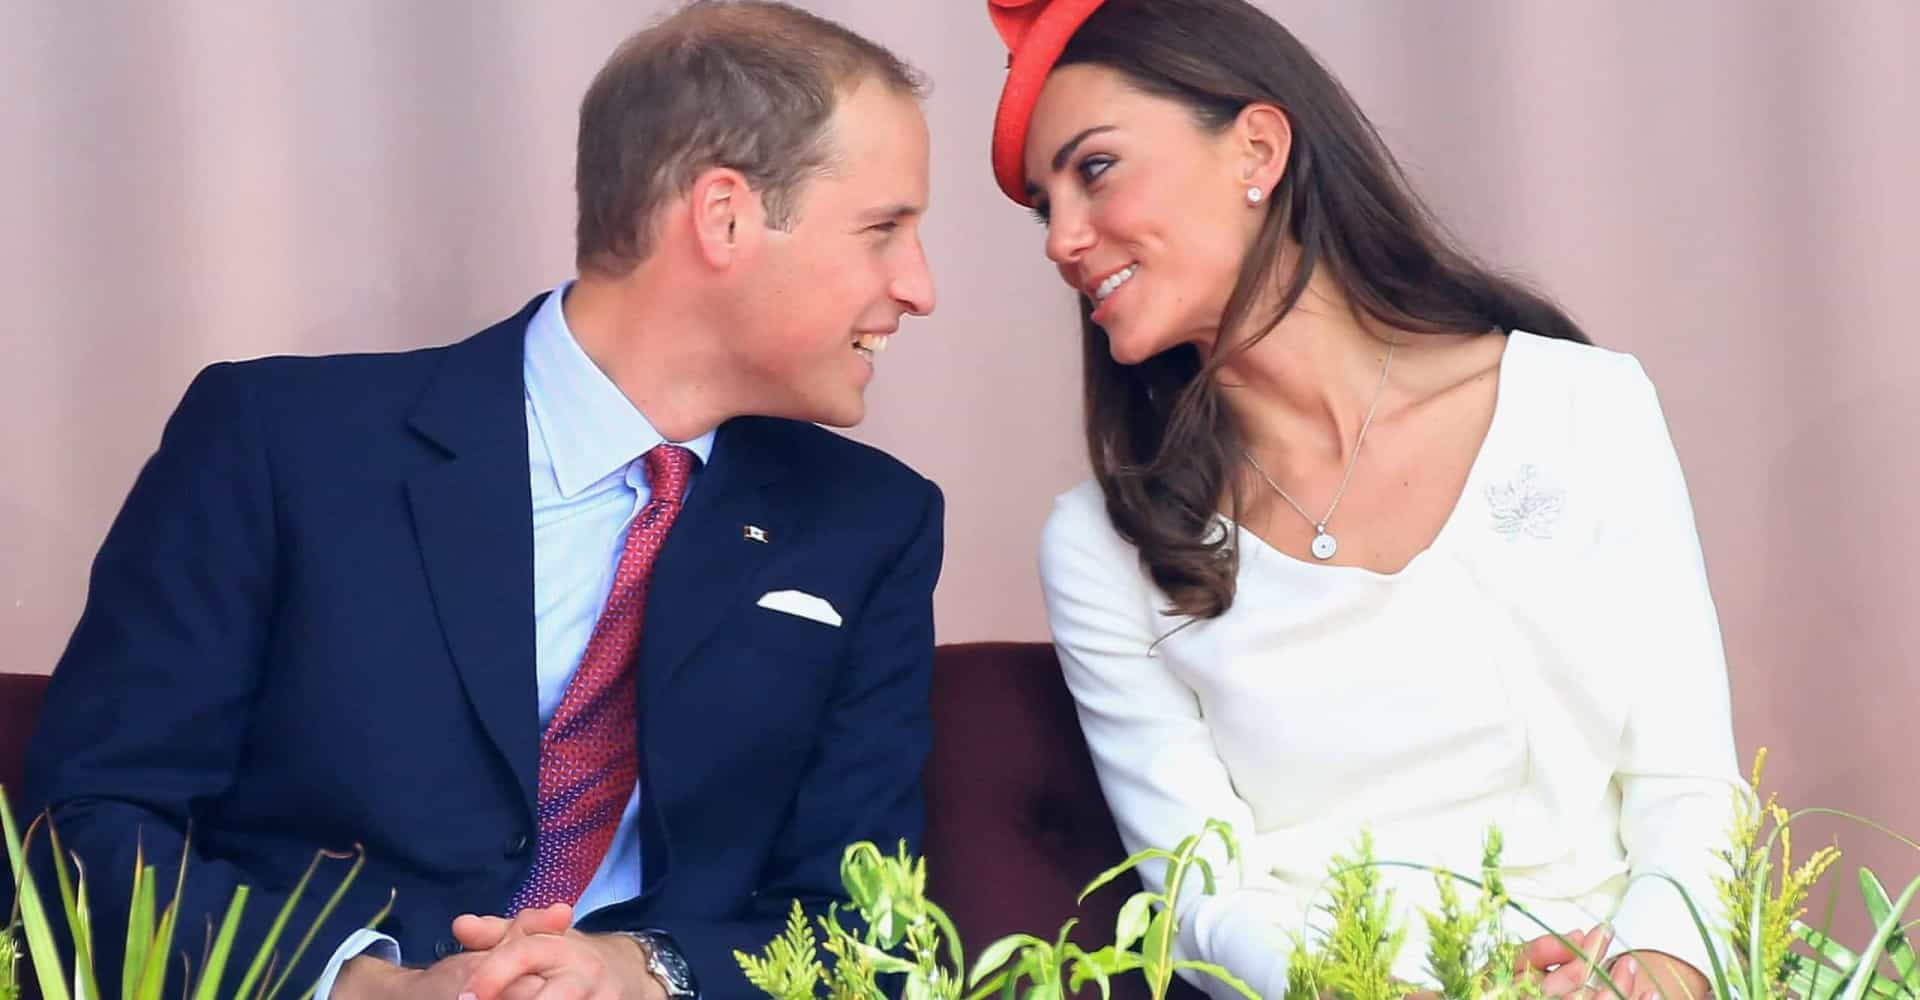 Kate and William: celebrating love on their anniversary